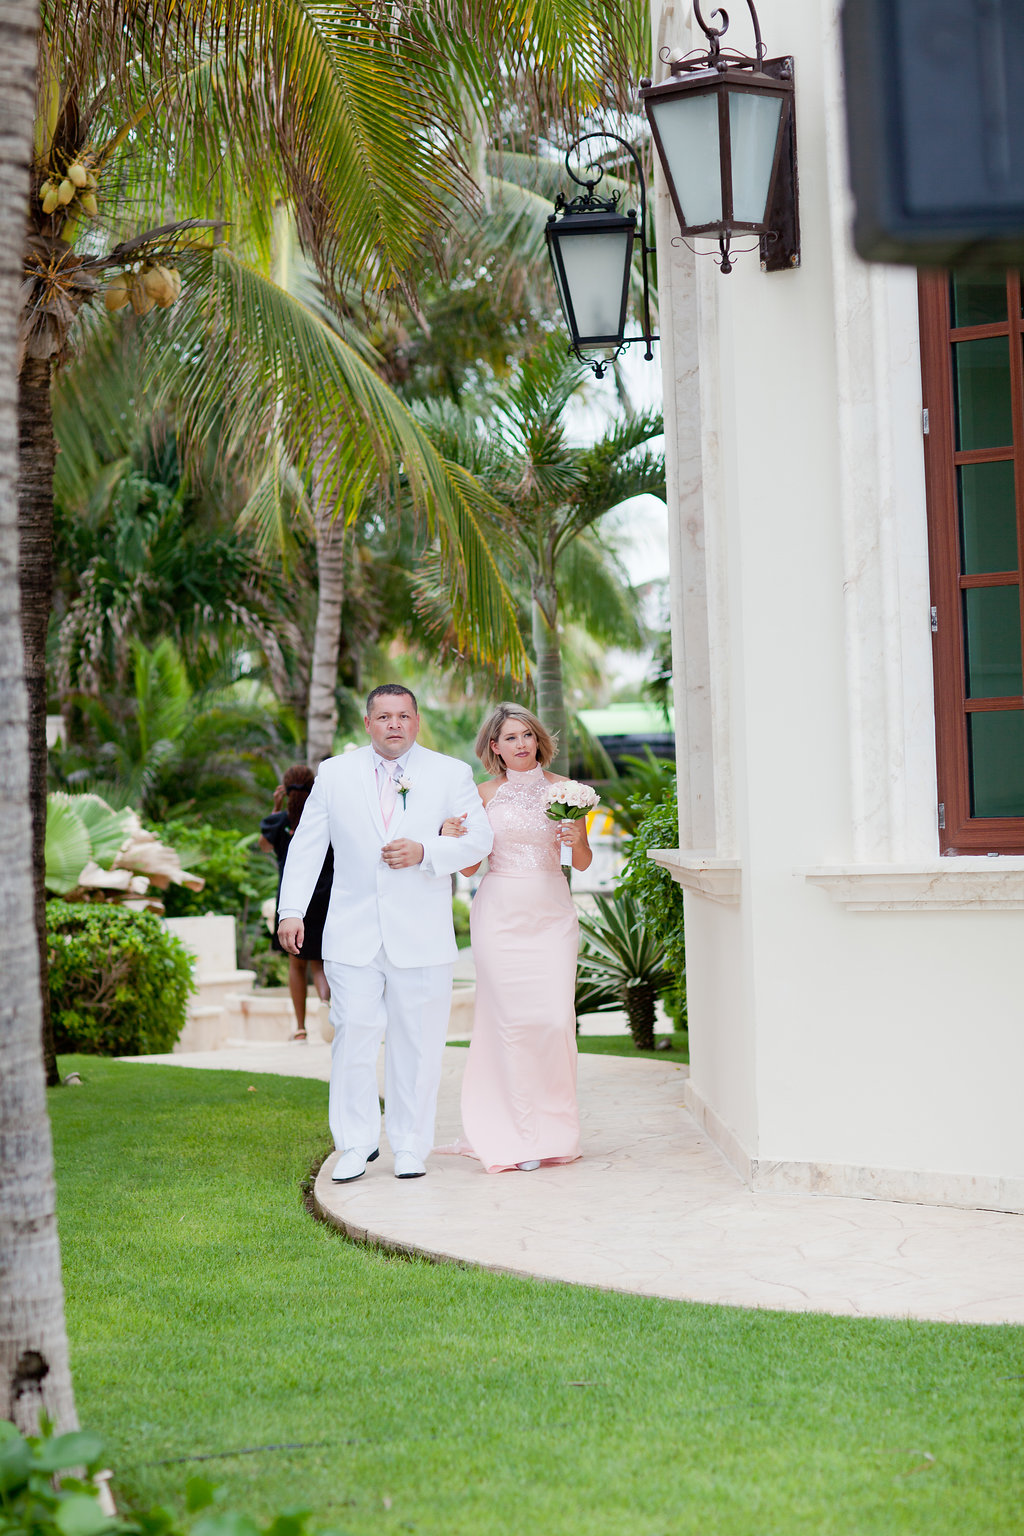 cancun-wedding-venue-08.jpg